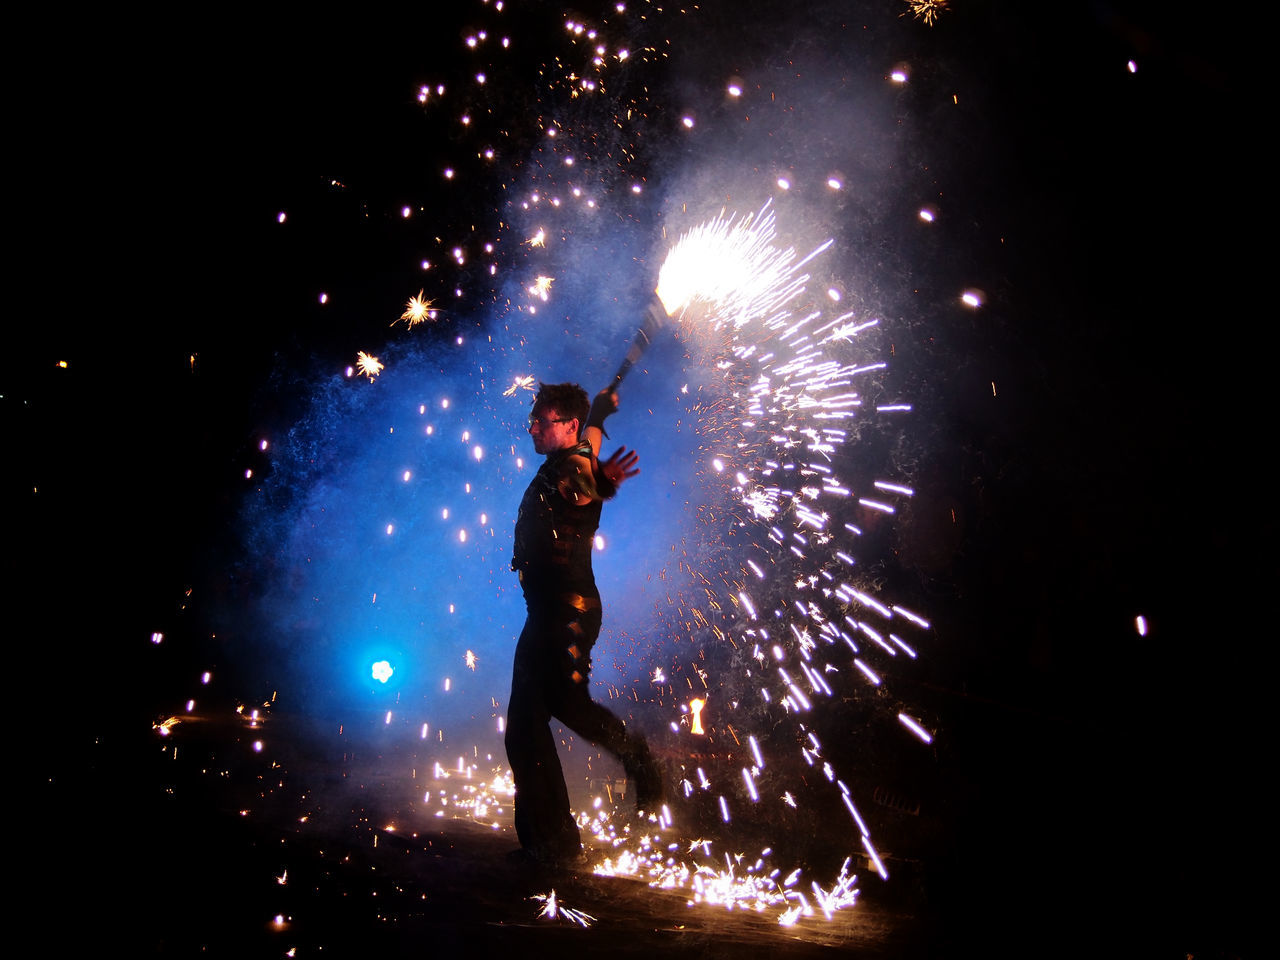 fire dancer Celebration Dancer Exploding Fire Dancer Firework Firework - Man Made Object Firework Display Motion Night One Person Outdoors People